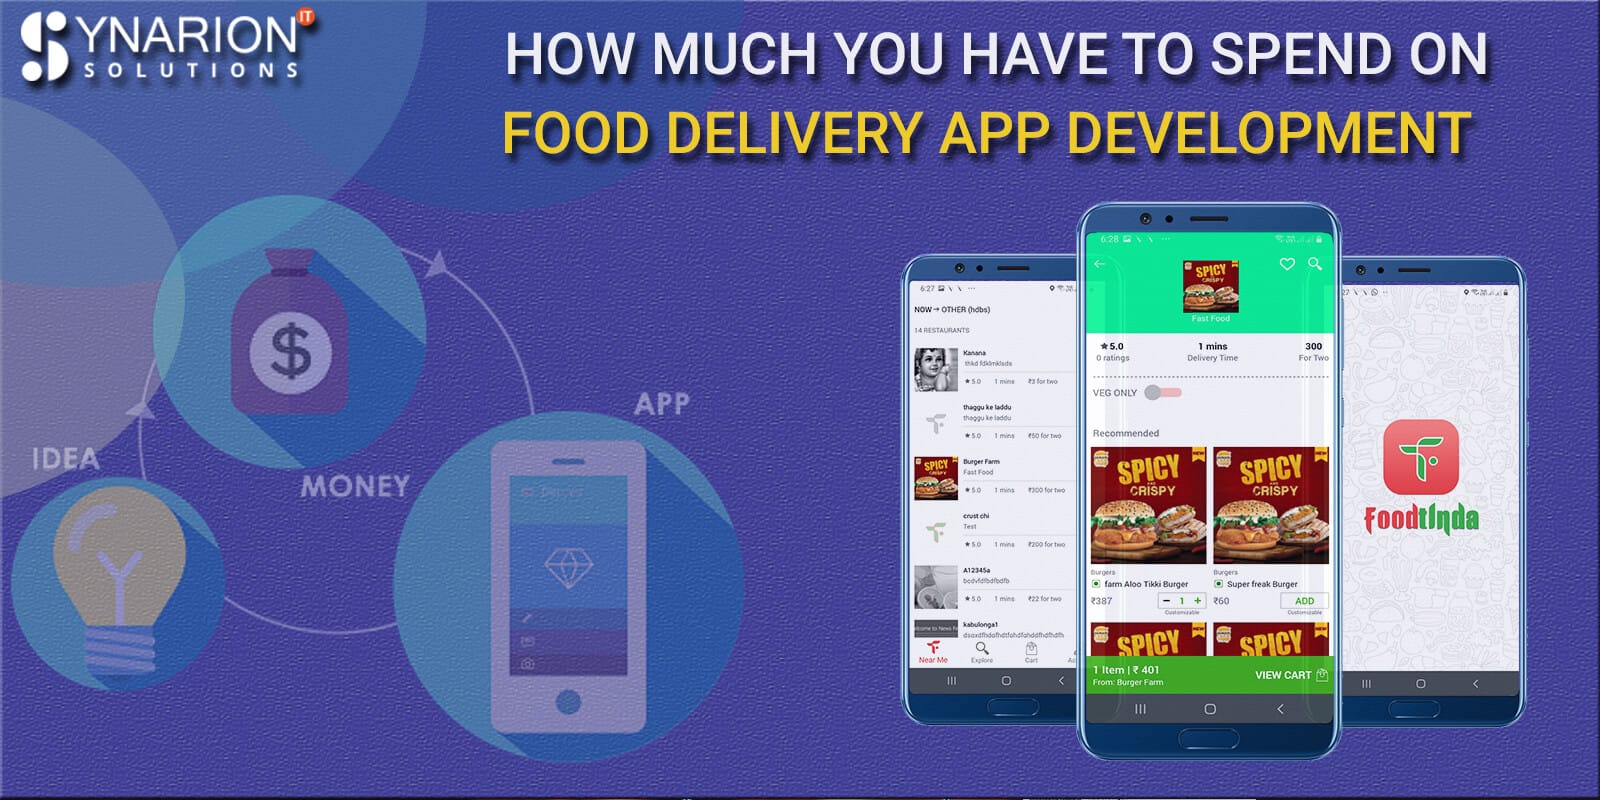 How Much You Have To Spend On Food Delivery App Development